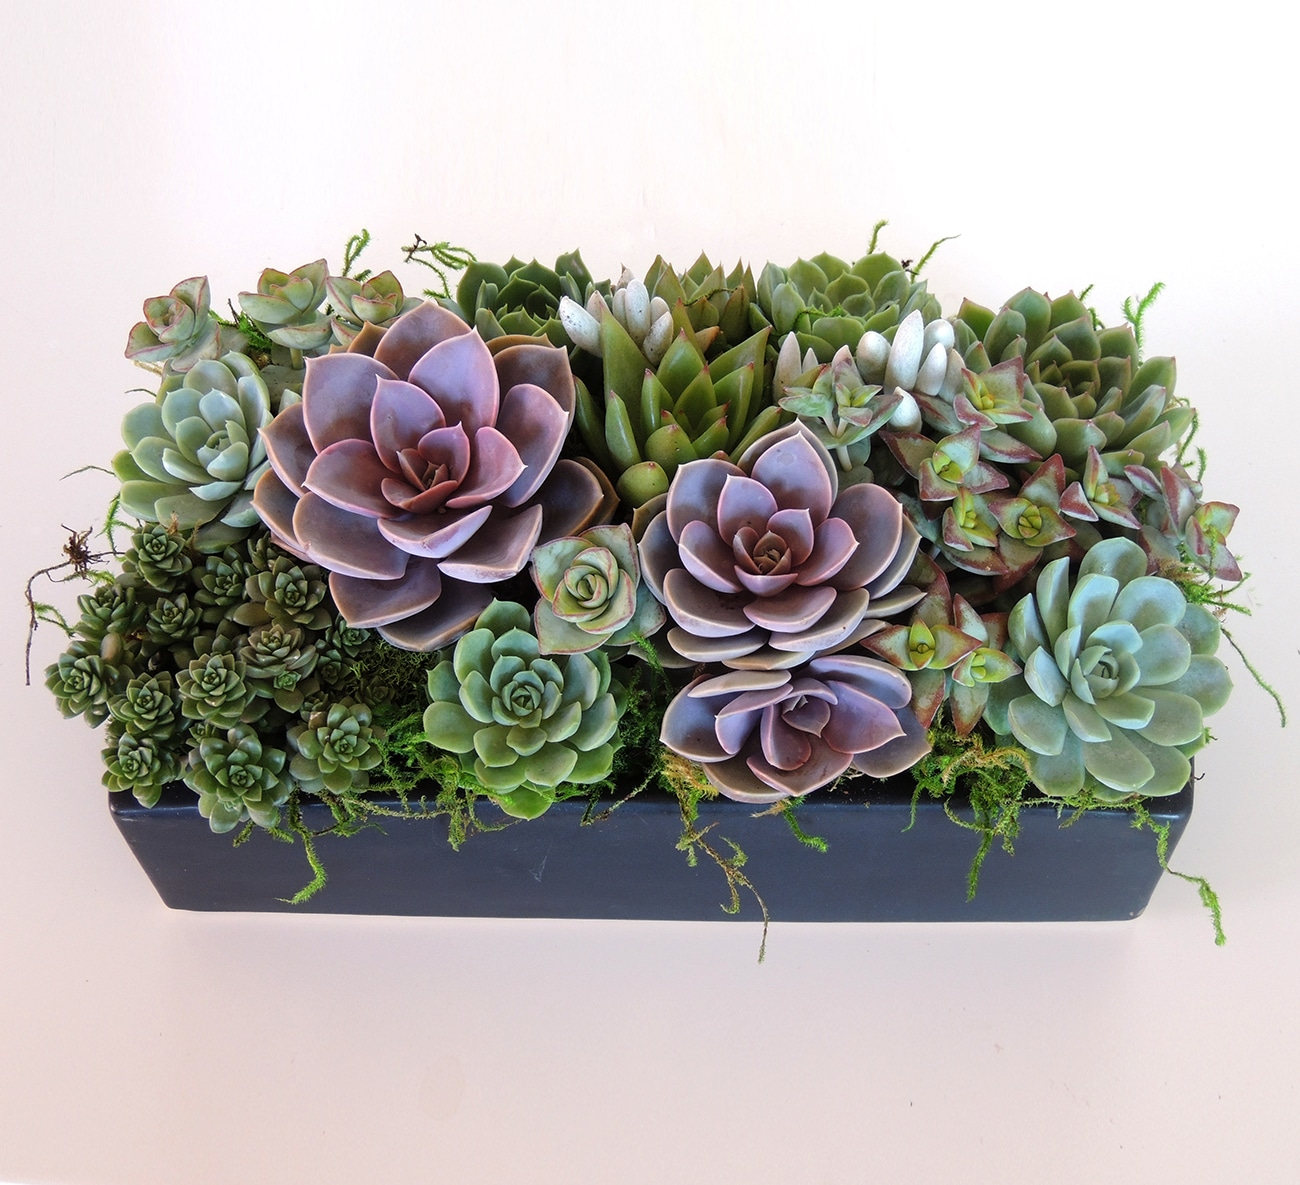 Pele-von Nurnberg arrangement in ceramic container